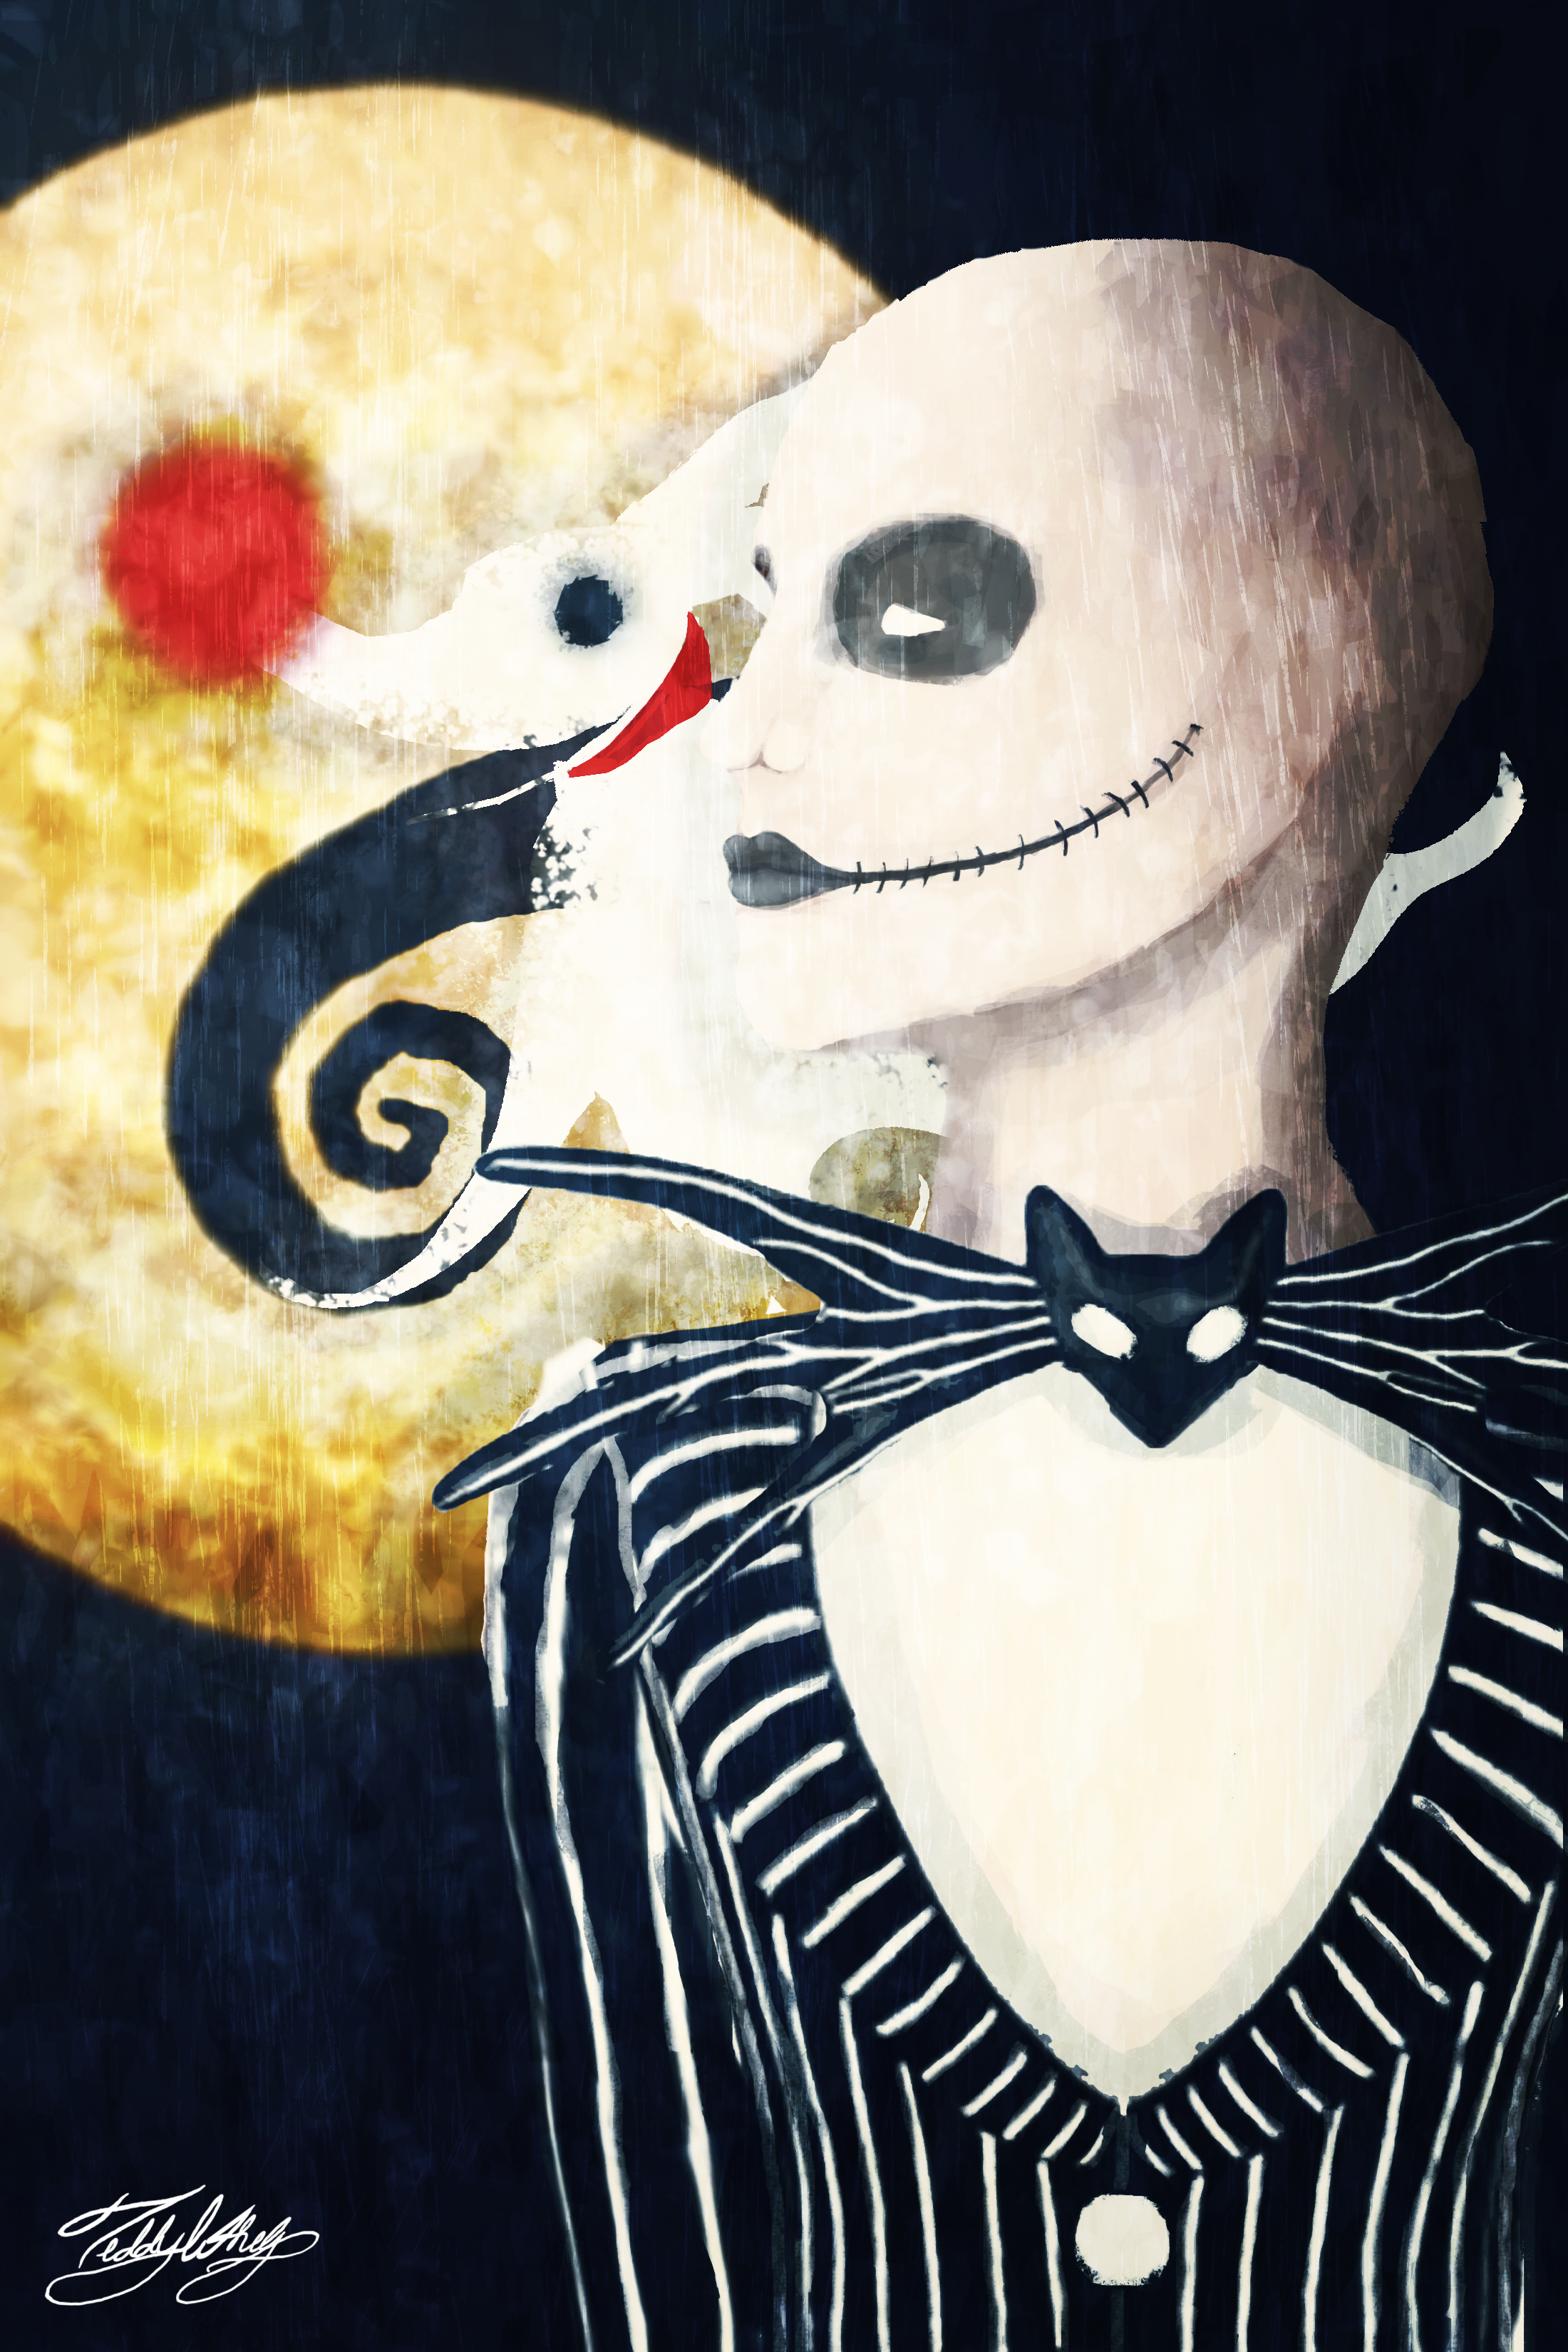 Jack and Zero - Nightmare before Christmas by TeddyWhelp on DeviantArt